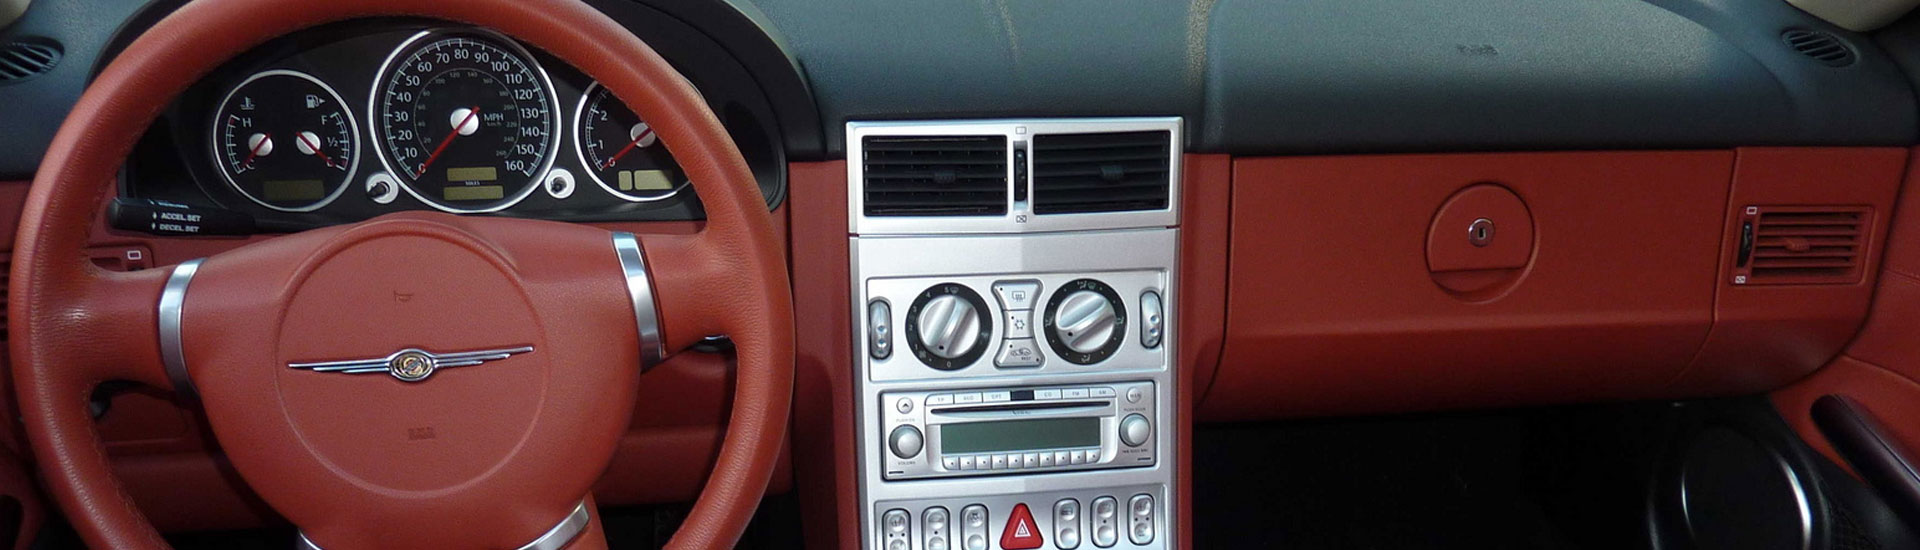 chrysler crossfire custom interior. chrysler crossfire custom dash kits interior r